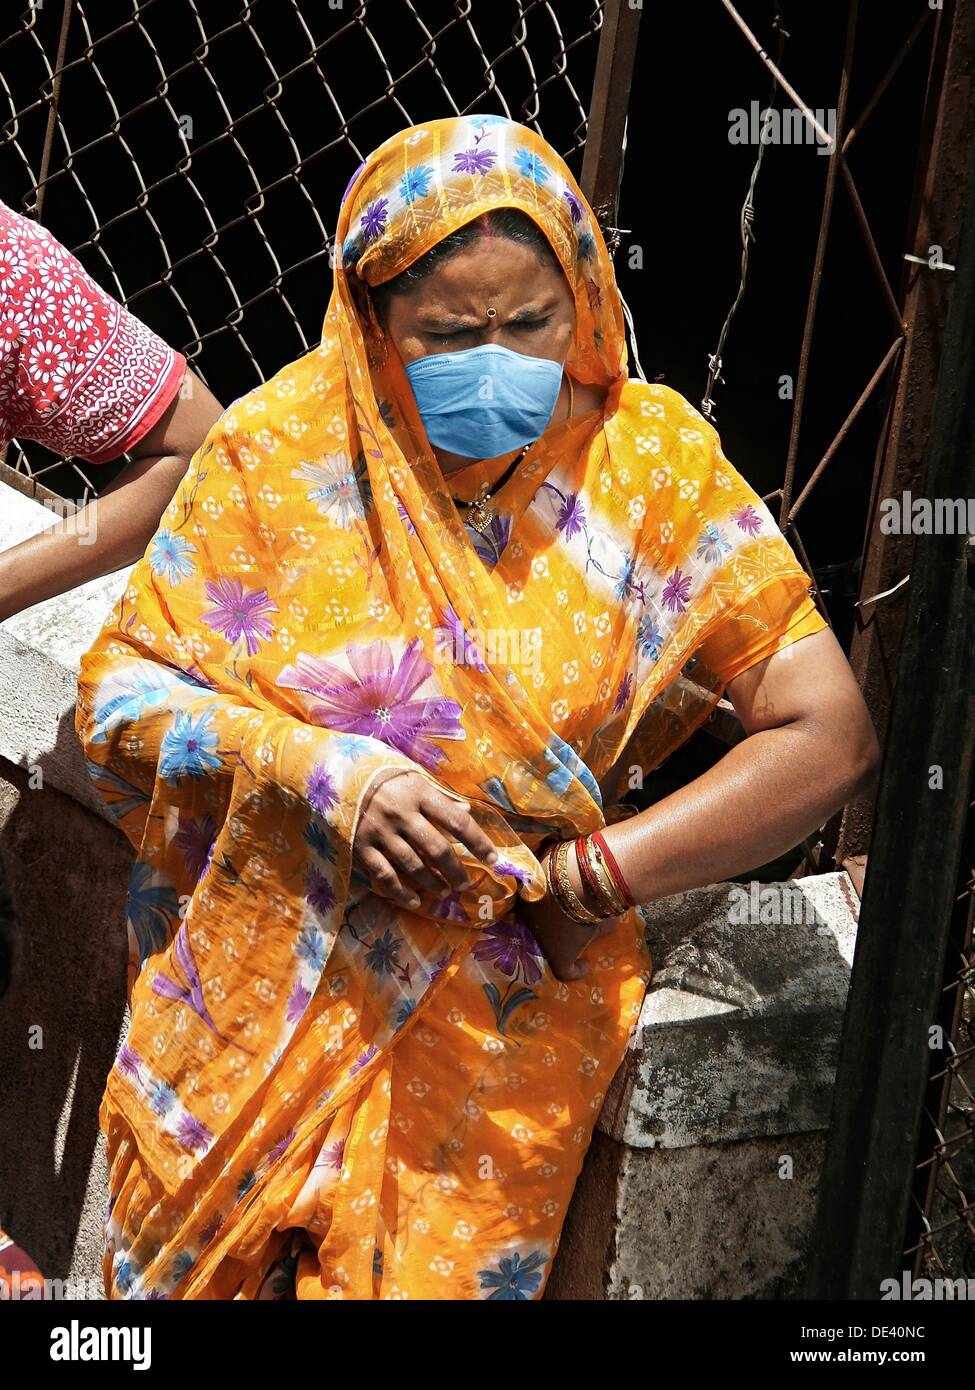 A woman at community water tap with mask, India - Stock Image